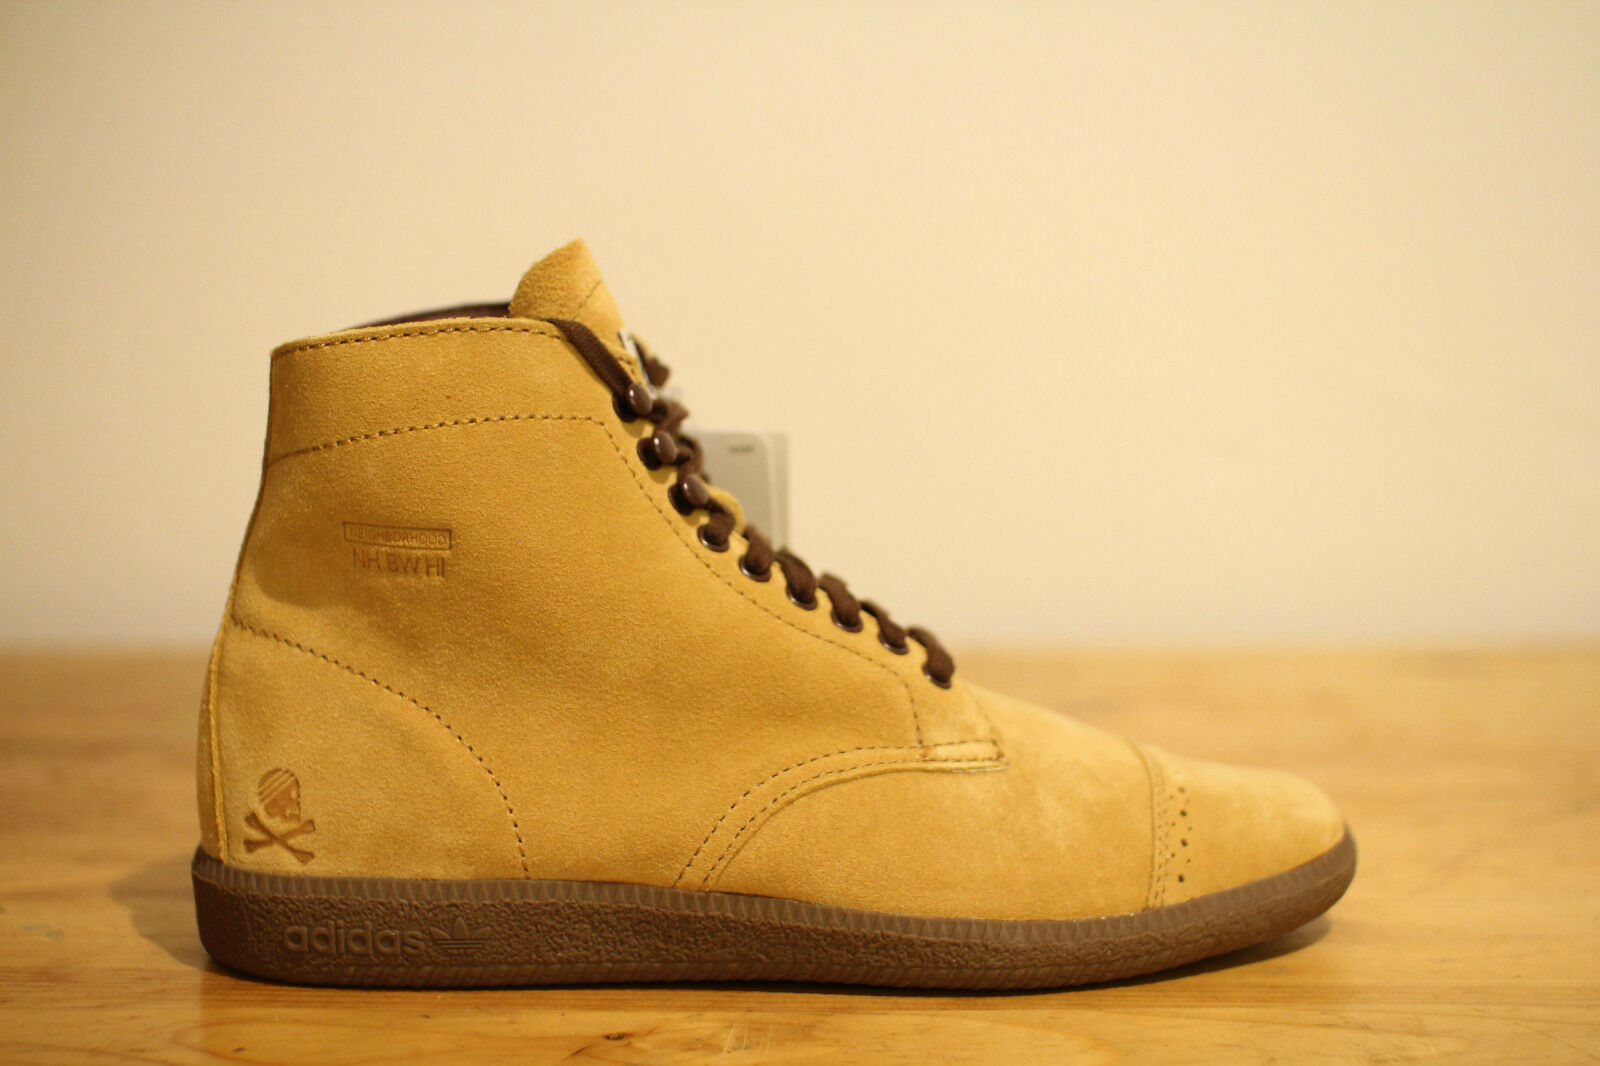 Adidas X Neighborhood Hi Tops Braun Gr. 42,43,44,45 NEU & OVP